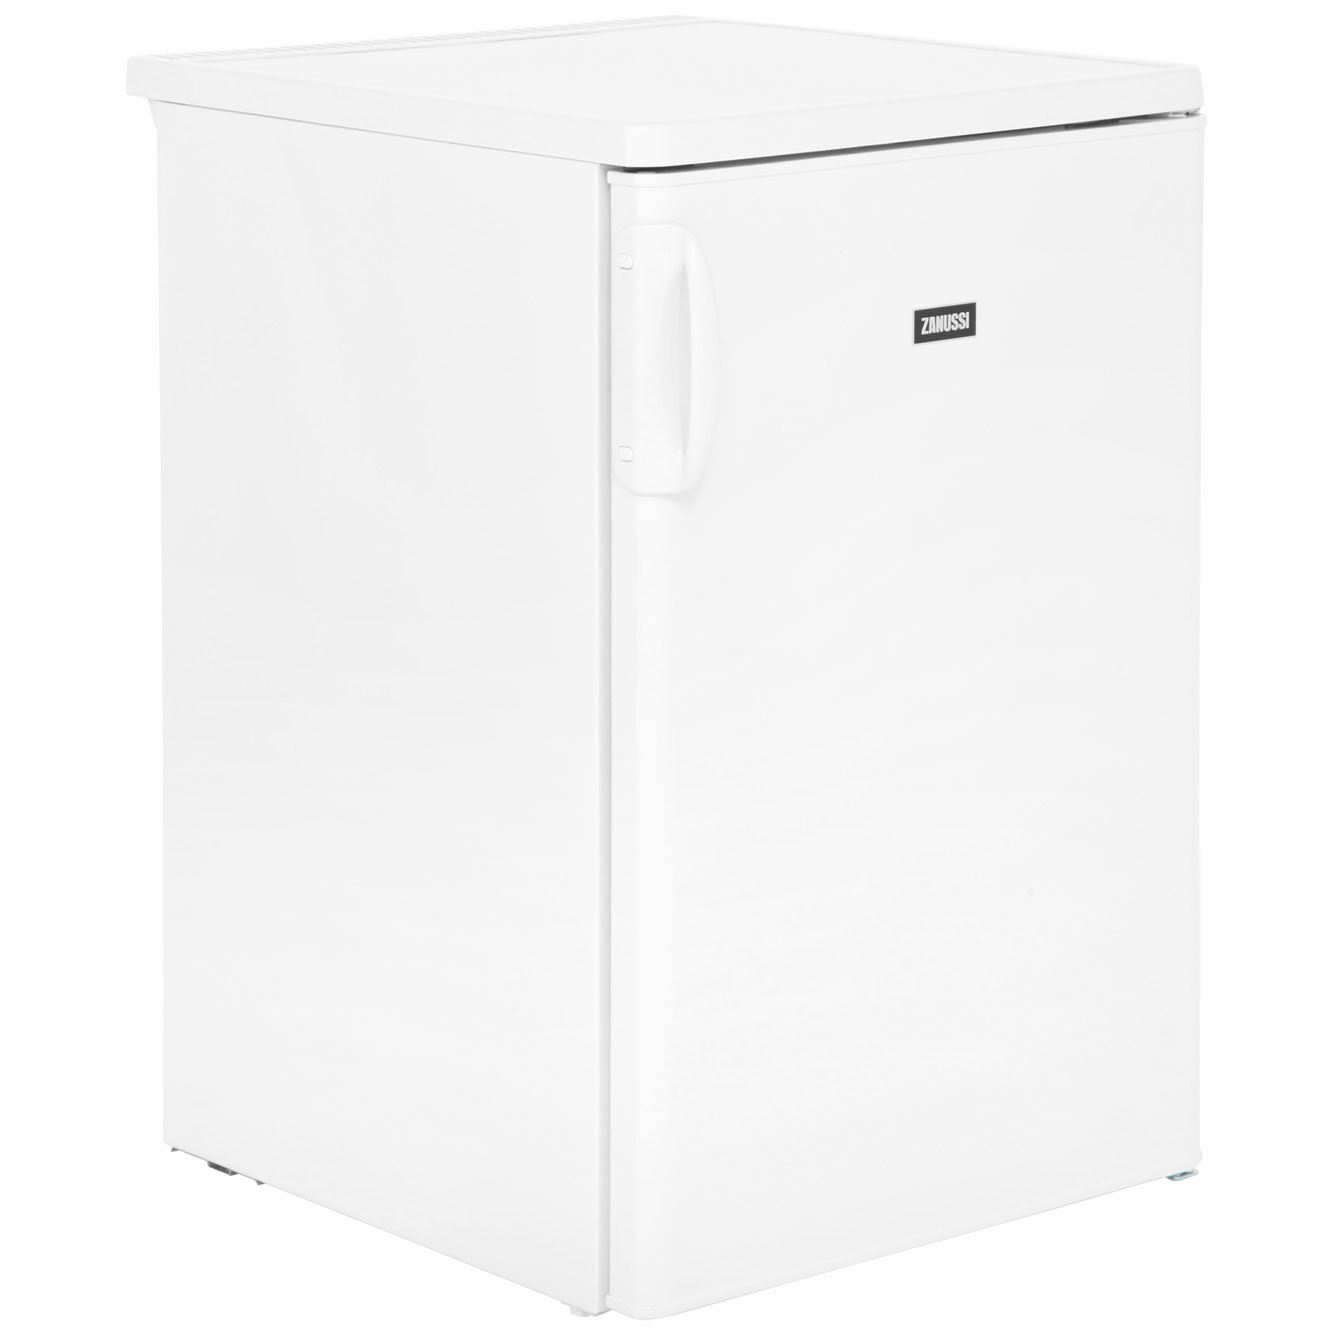 Zanussi ZRG16603WA Fridge - White